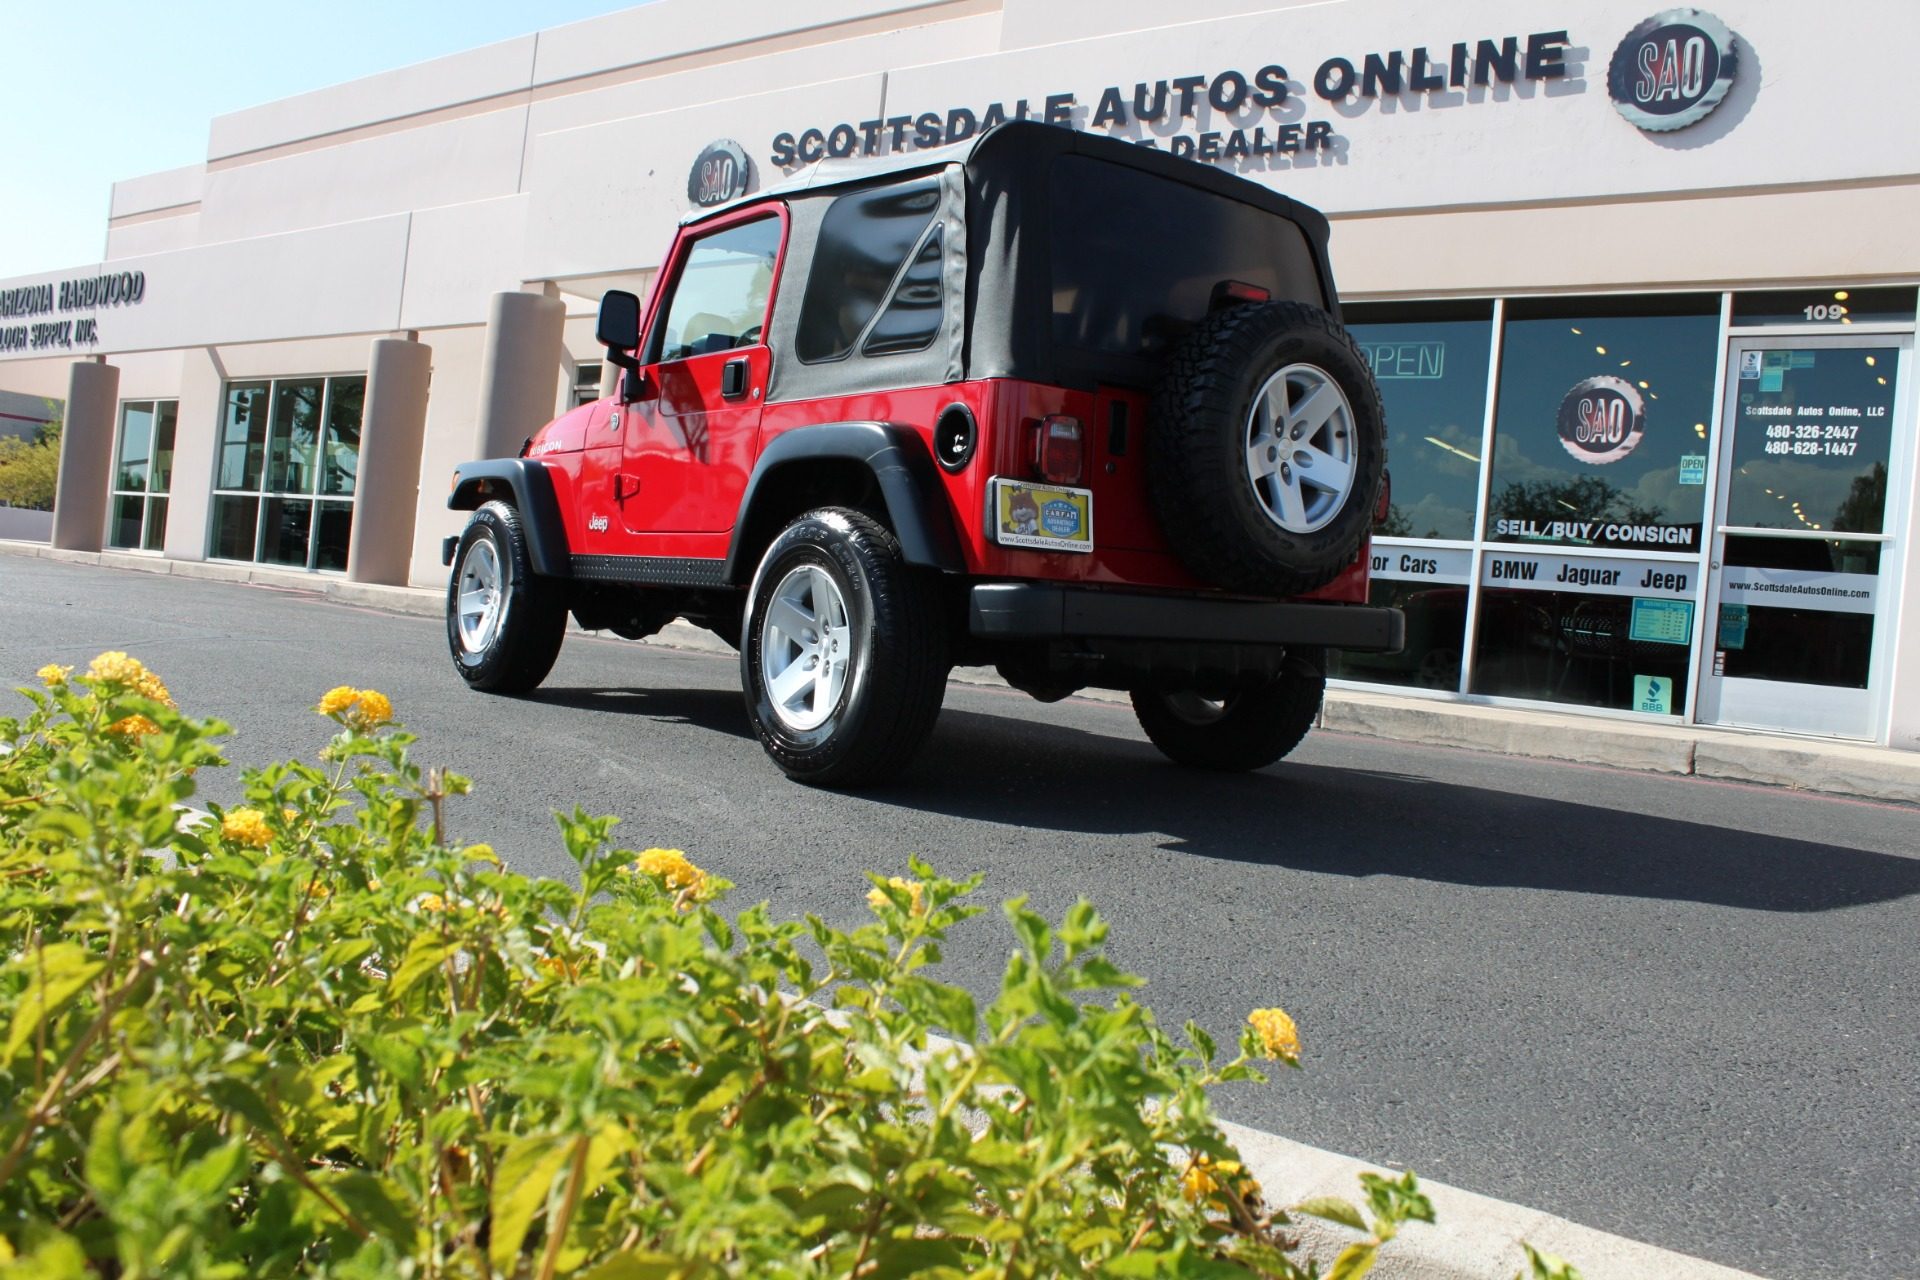 Used-2006-Jeep-Wrangler-Rubicon-Chalenger